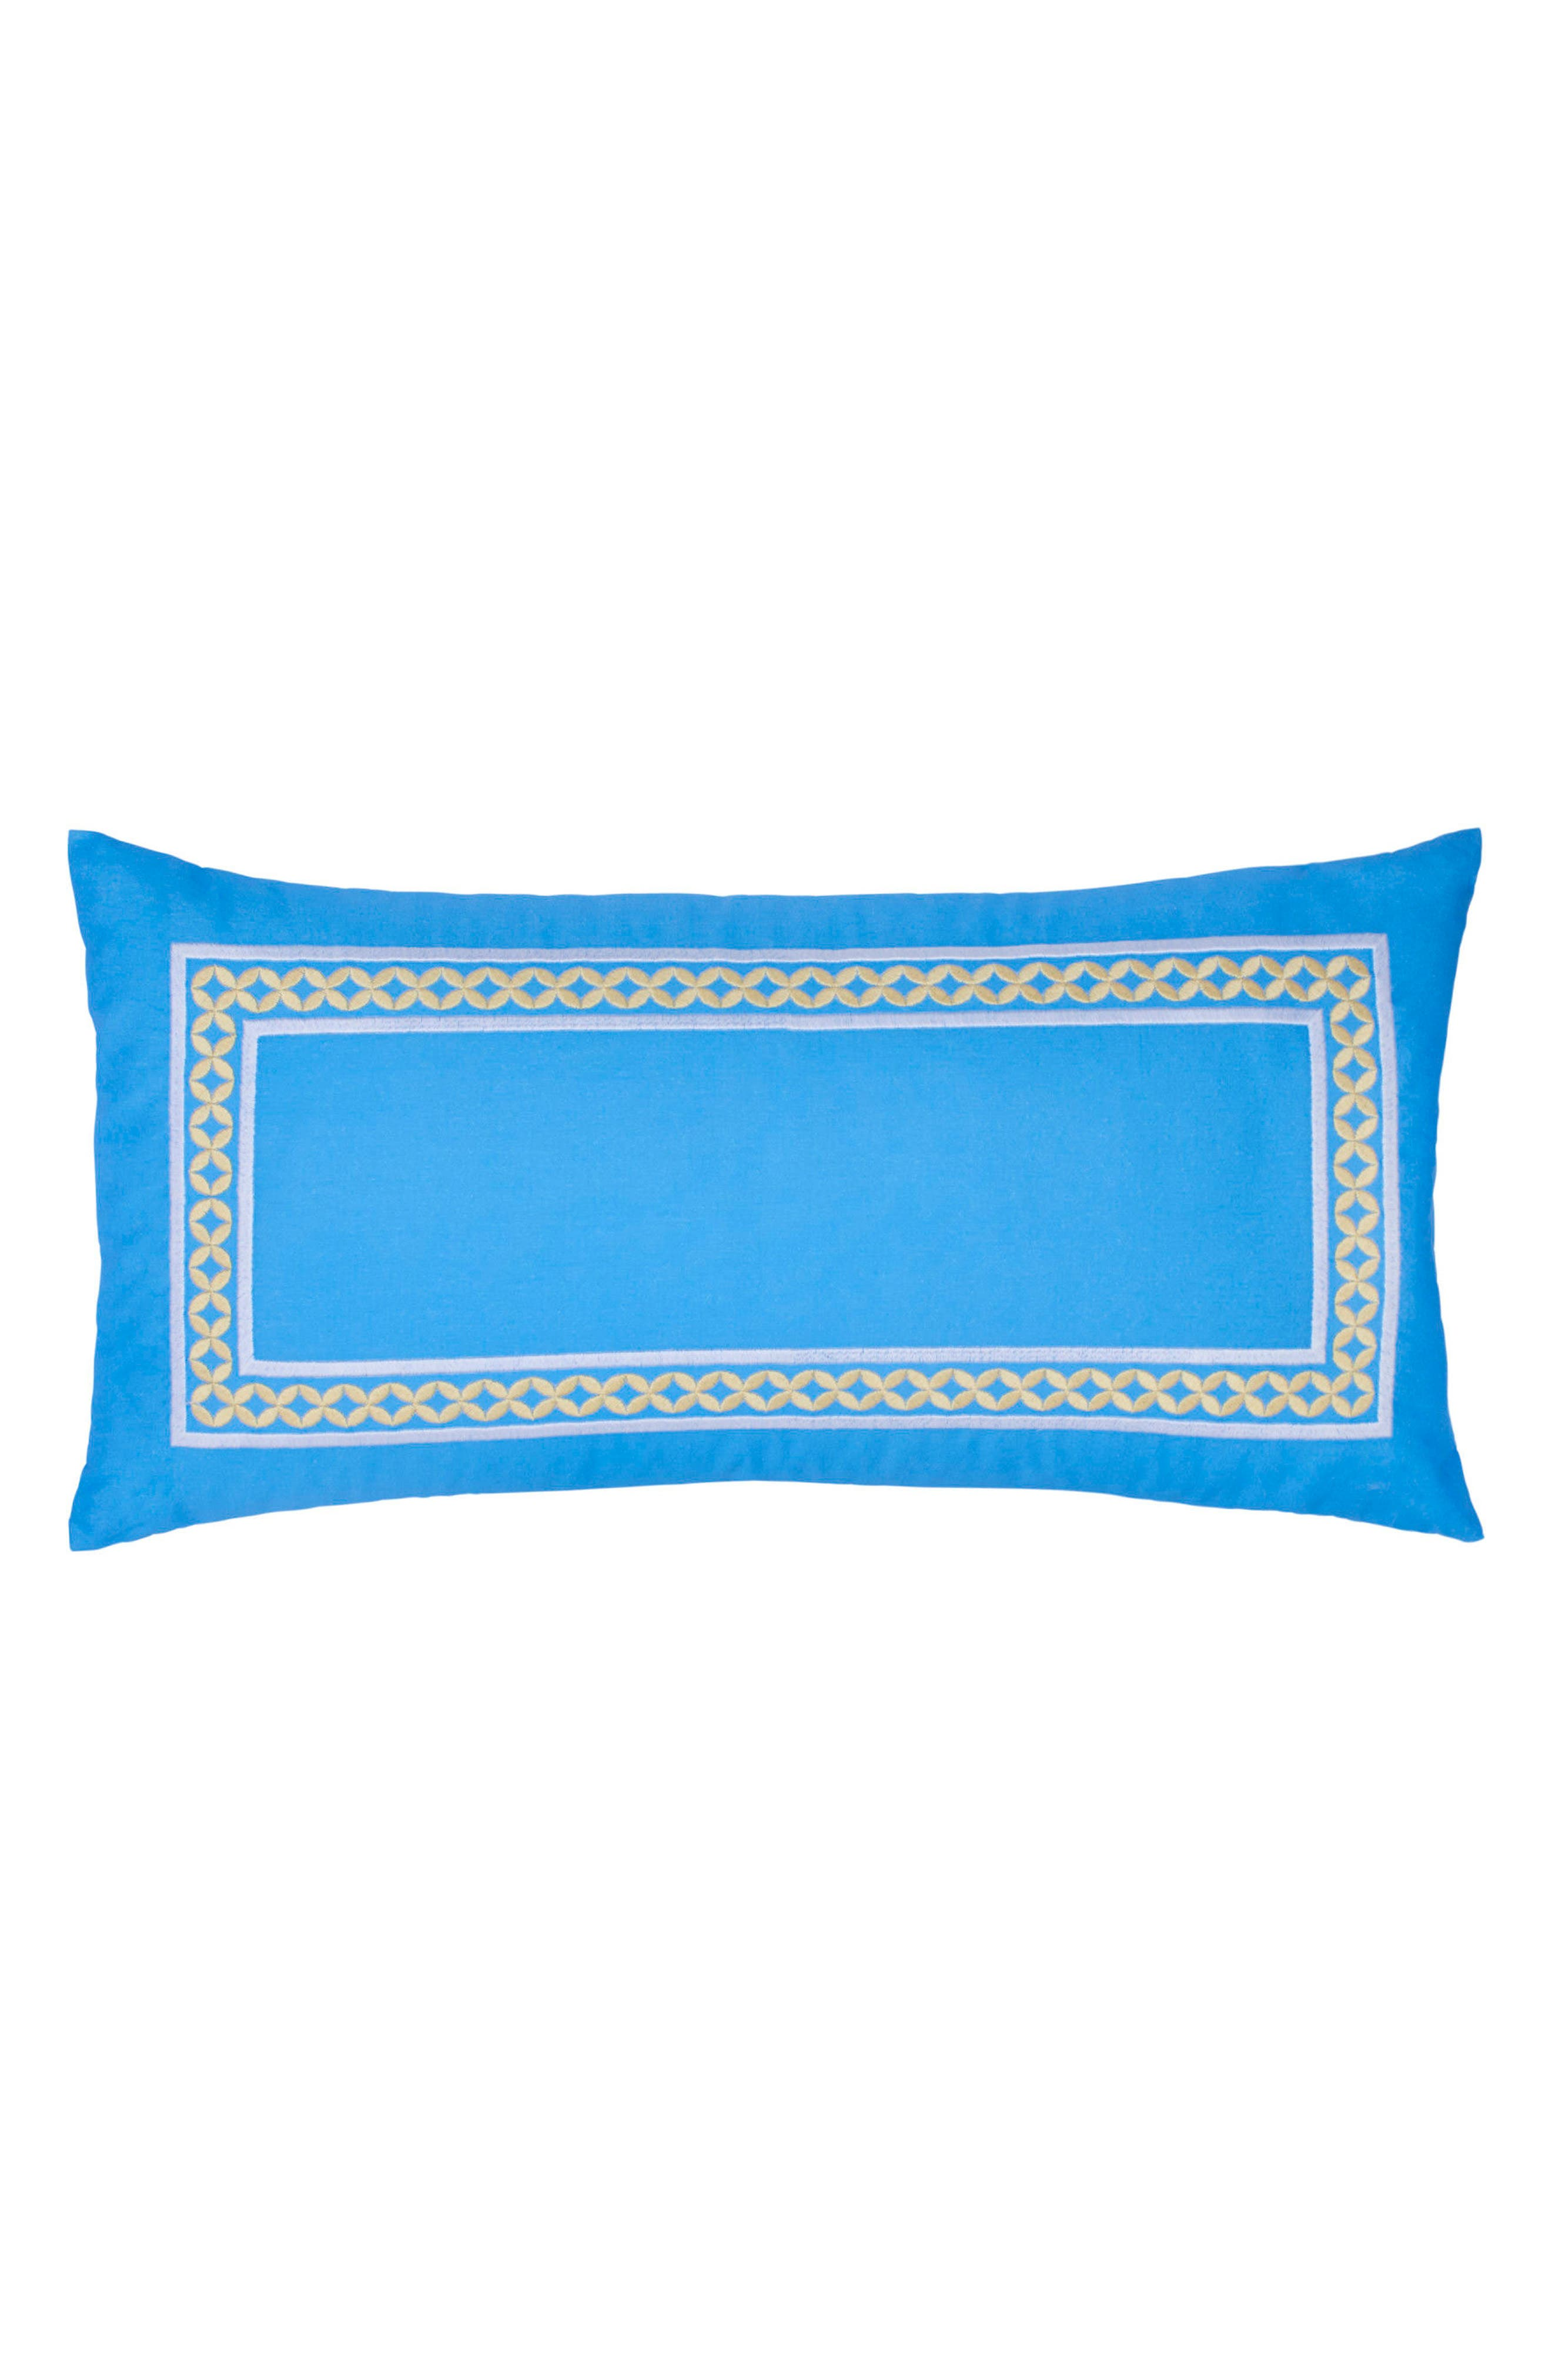 Main Image - Southern Tide Sailgate Embroidered Border Accent Pillow